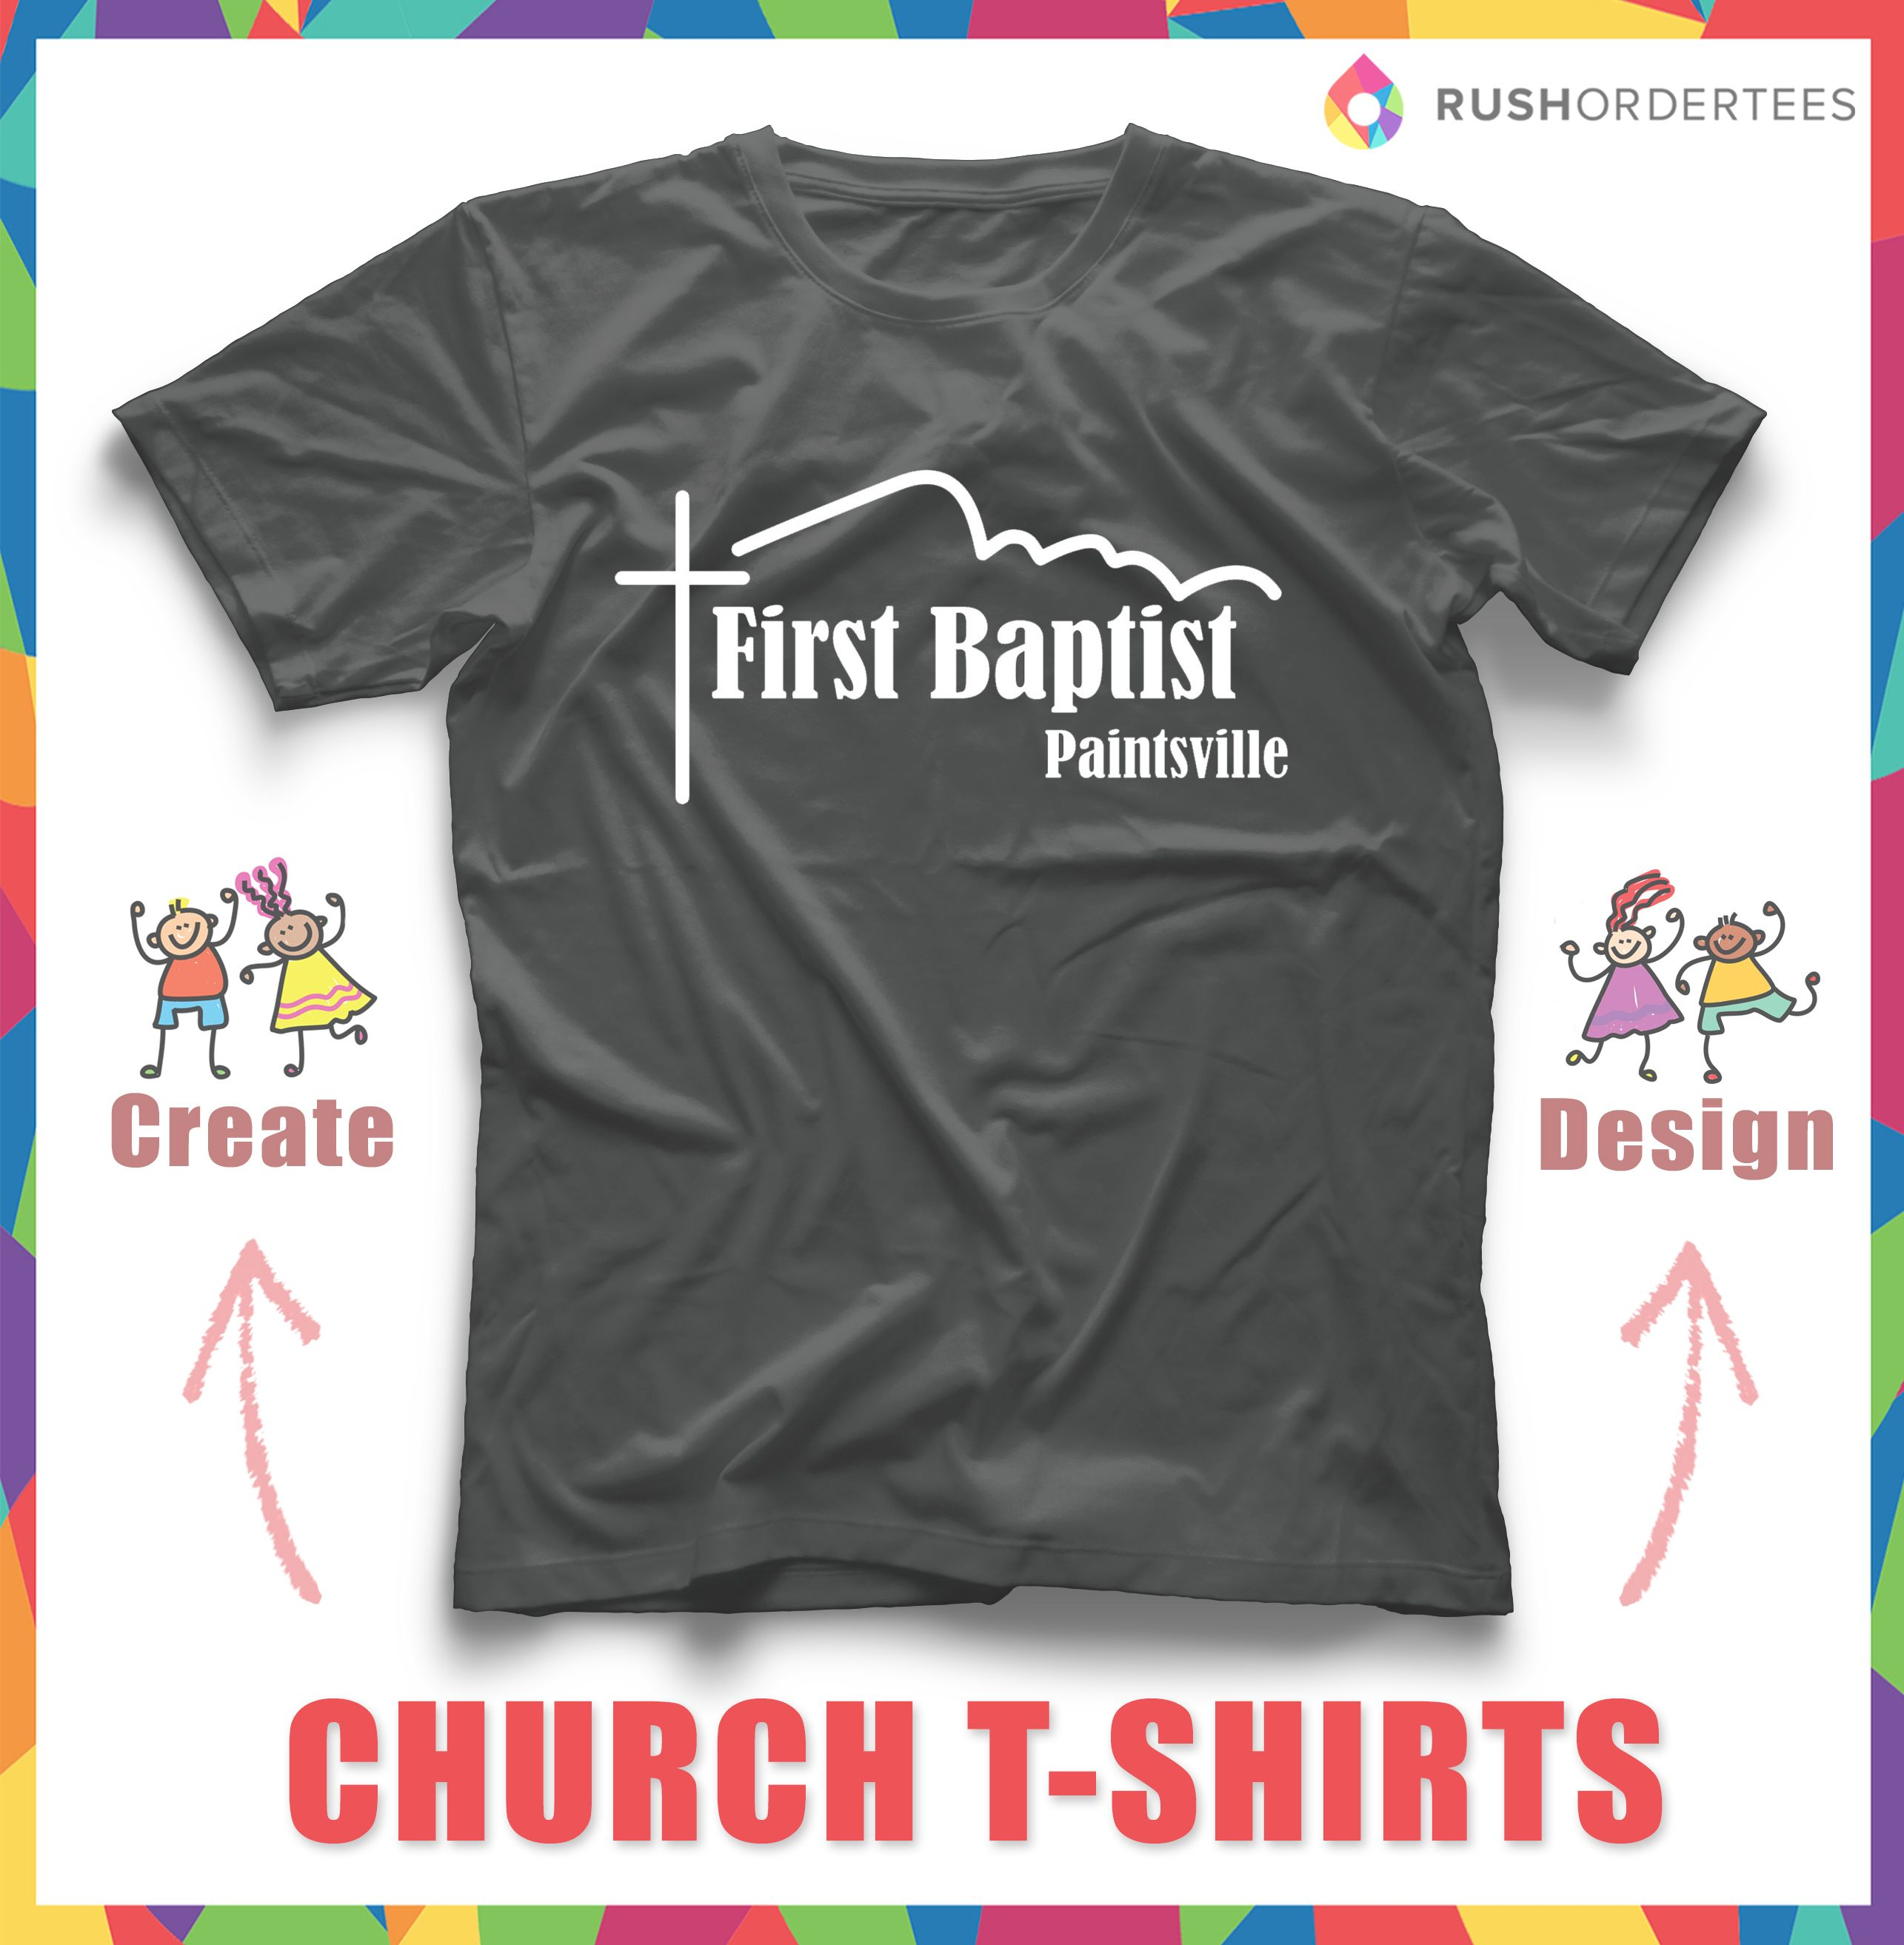 Church T Shirt Design Ideas religious church t shirt cha 2003 Church Design Idea For Your Custom T Shirts You Can Find More Custom Church